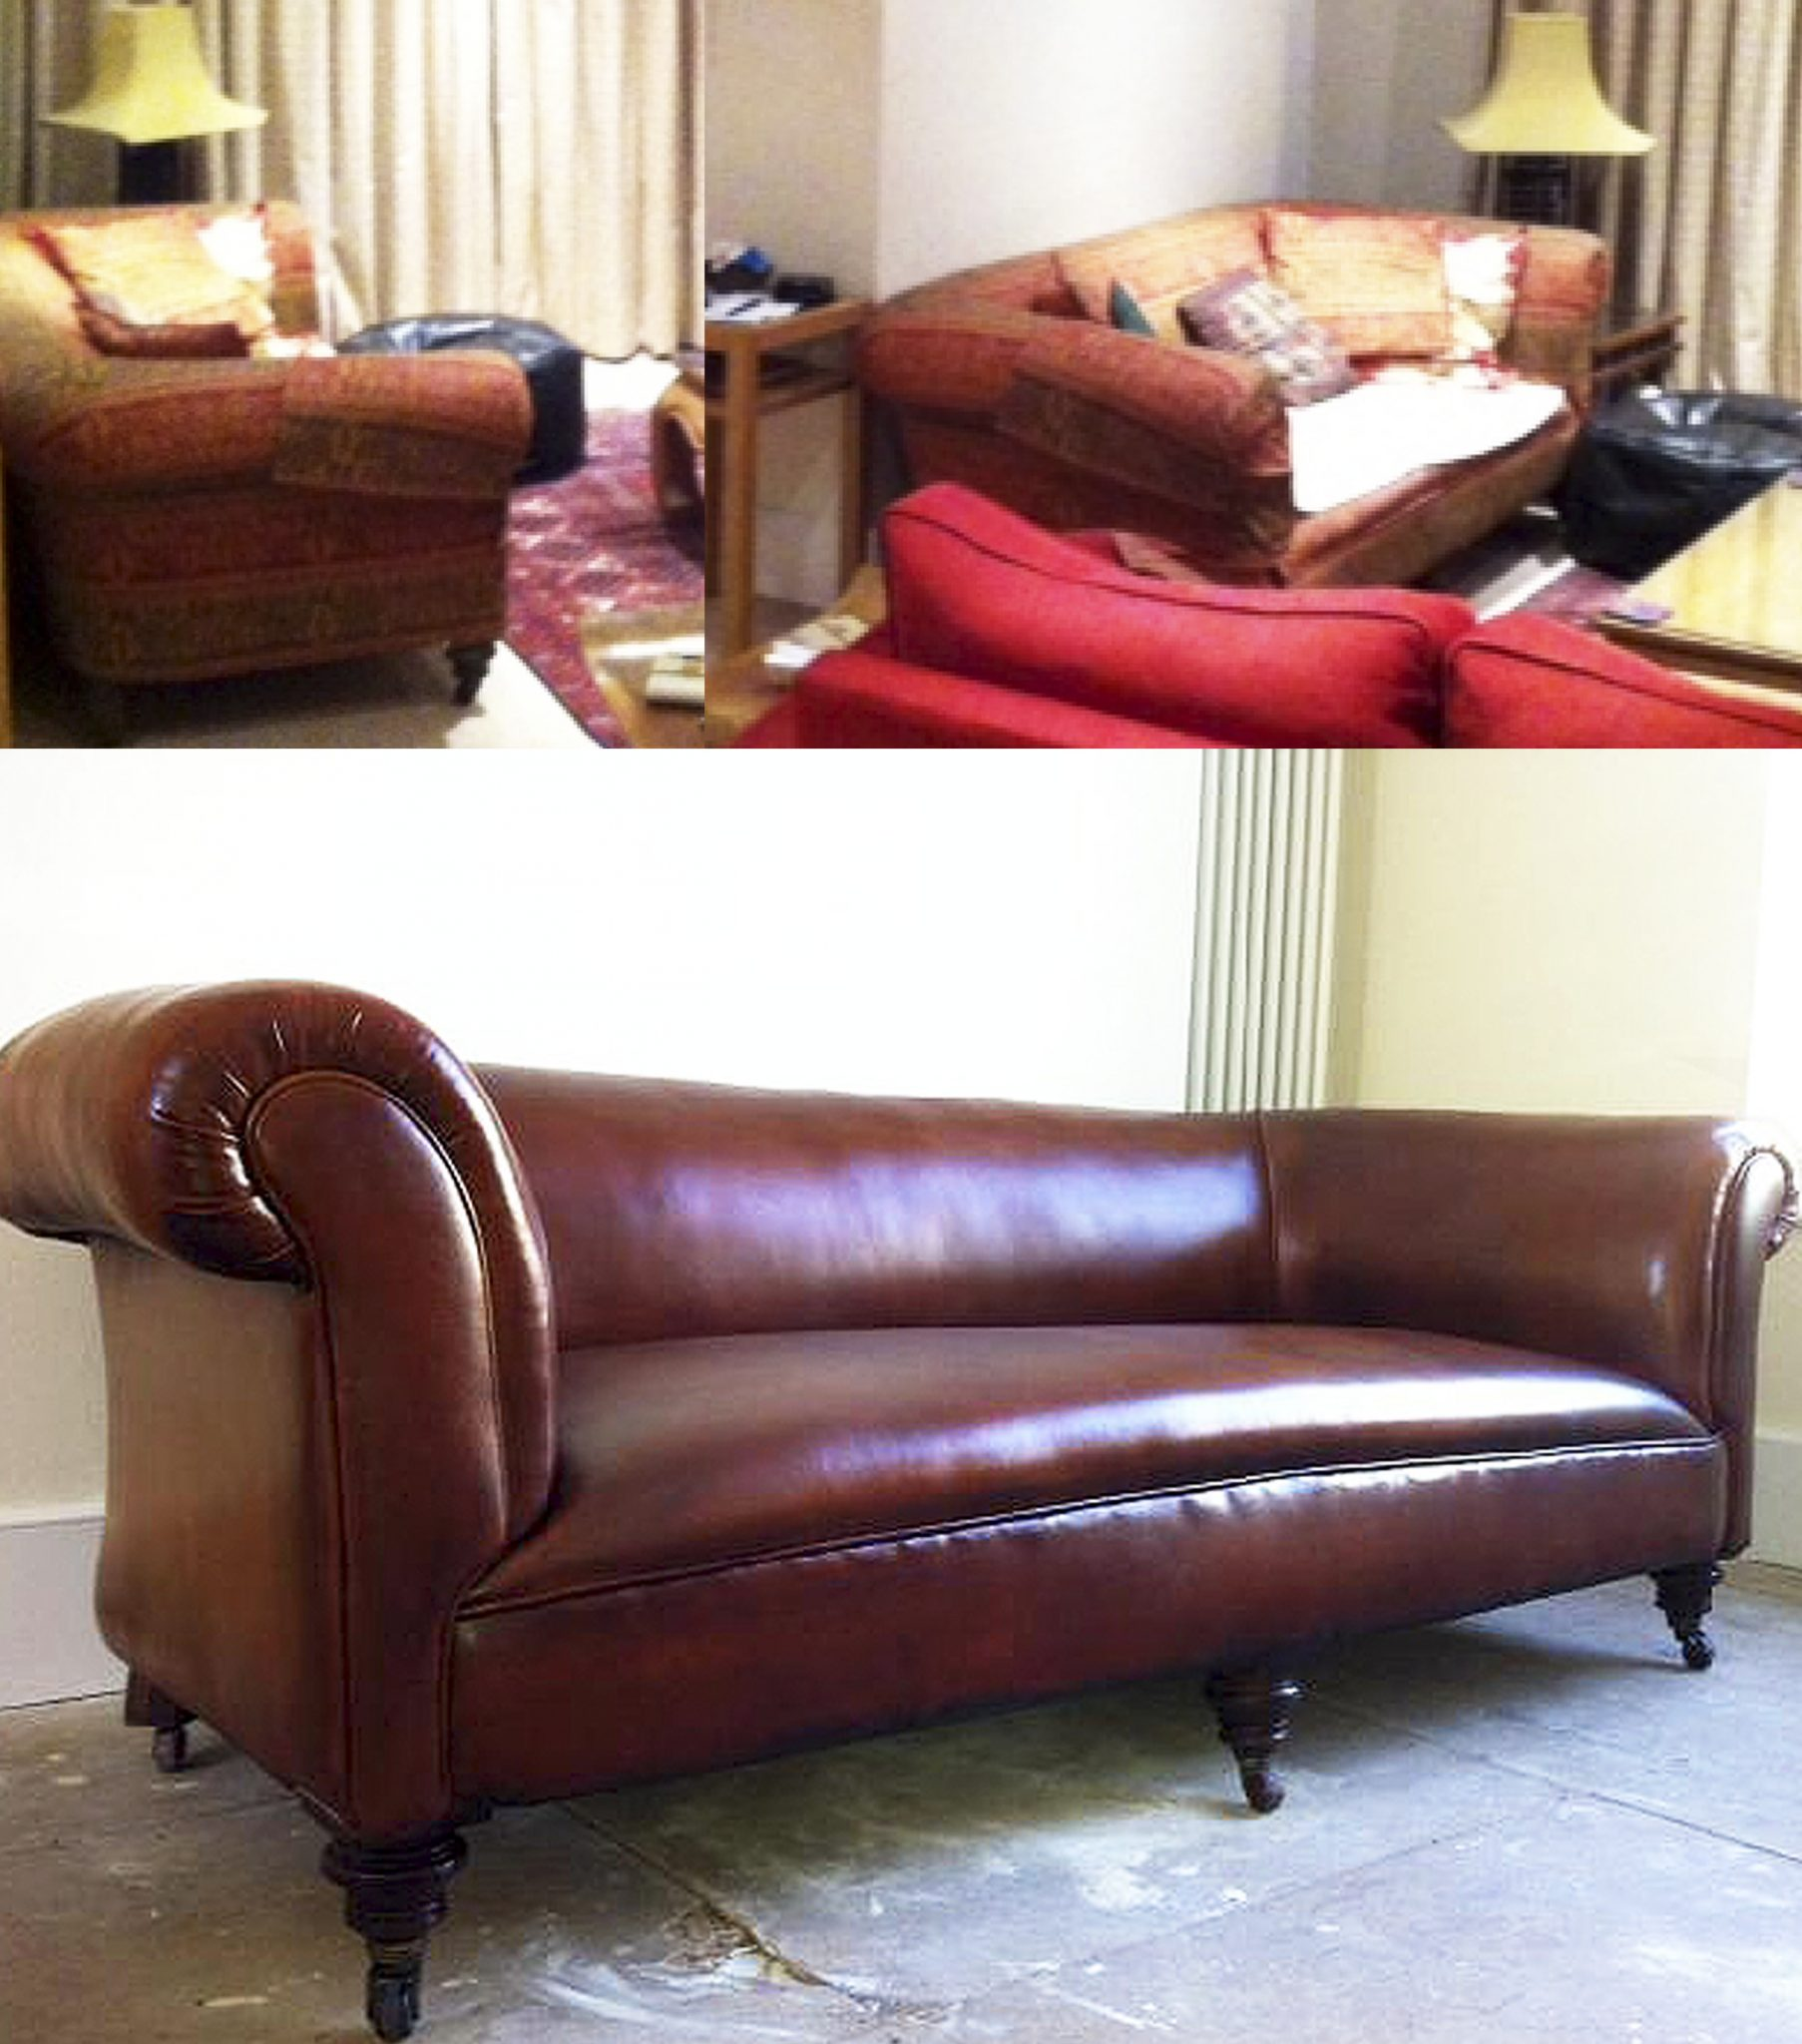 Before and After – A Handsome Sofa